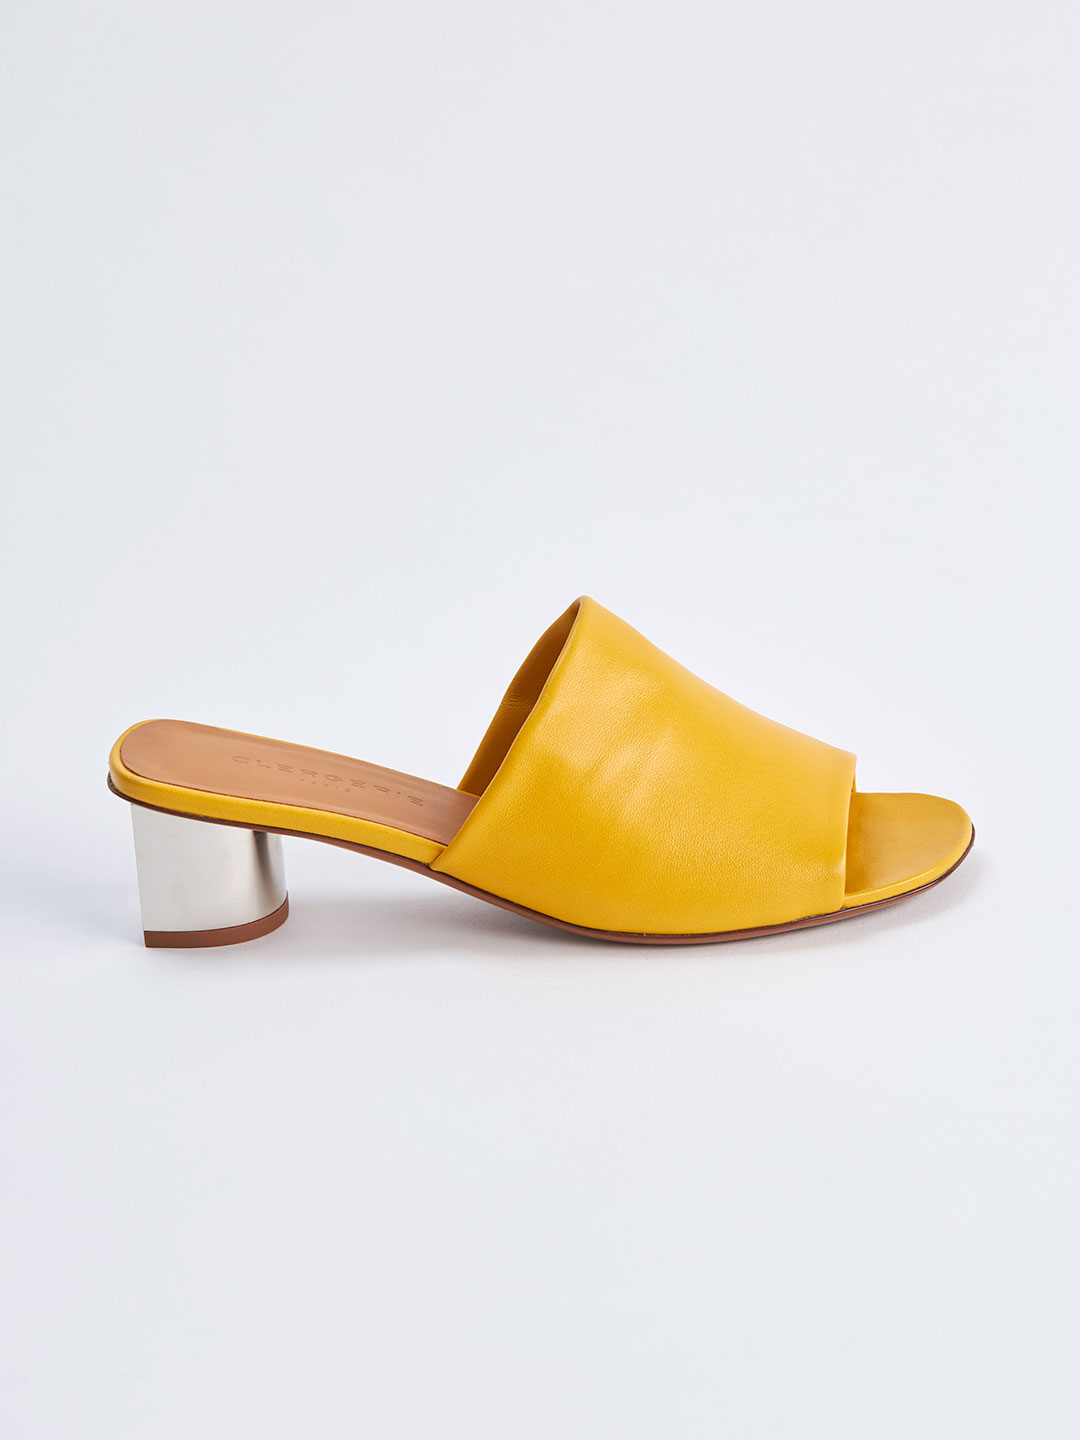 LEA Middle Heel Mules - Yellow